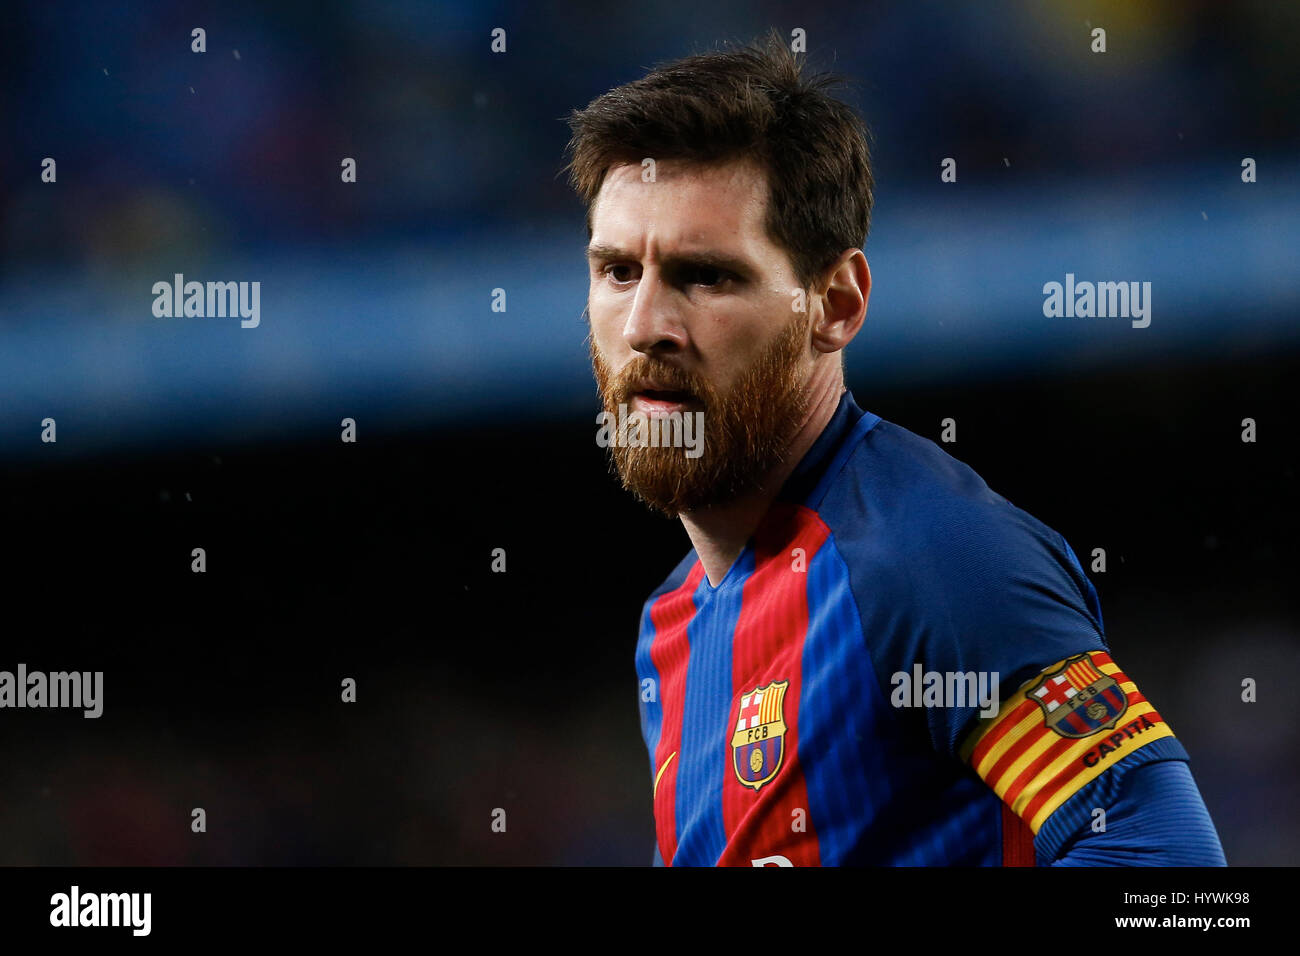 Barcelona, Spain. 26th Apr, 2017. Barcelona's Lionel Messi reacts during the Spanish first division soccer match - Stock Image